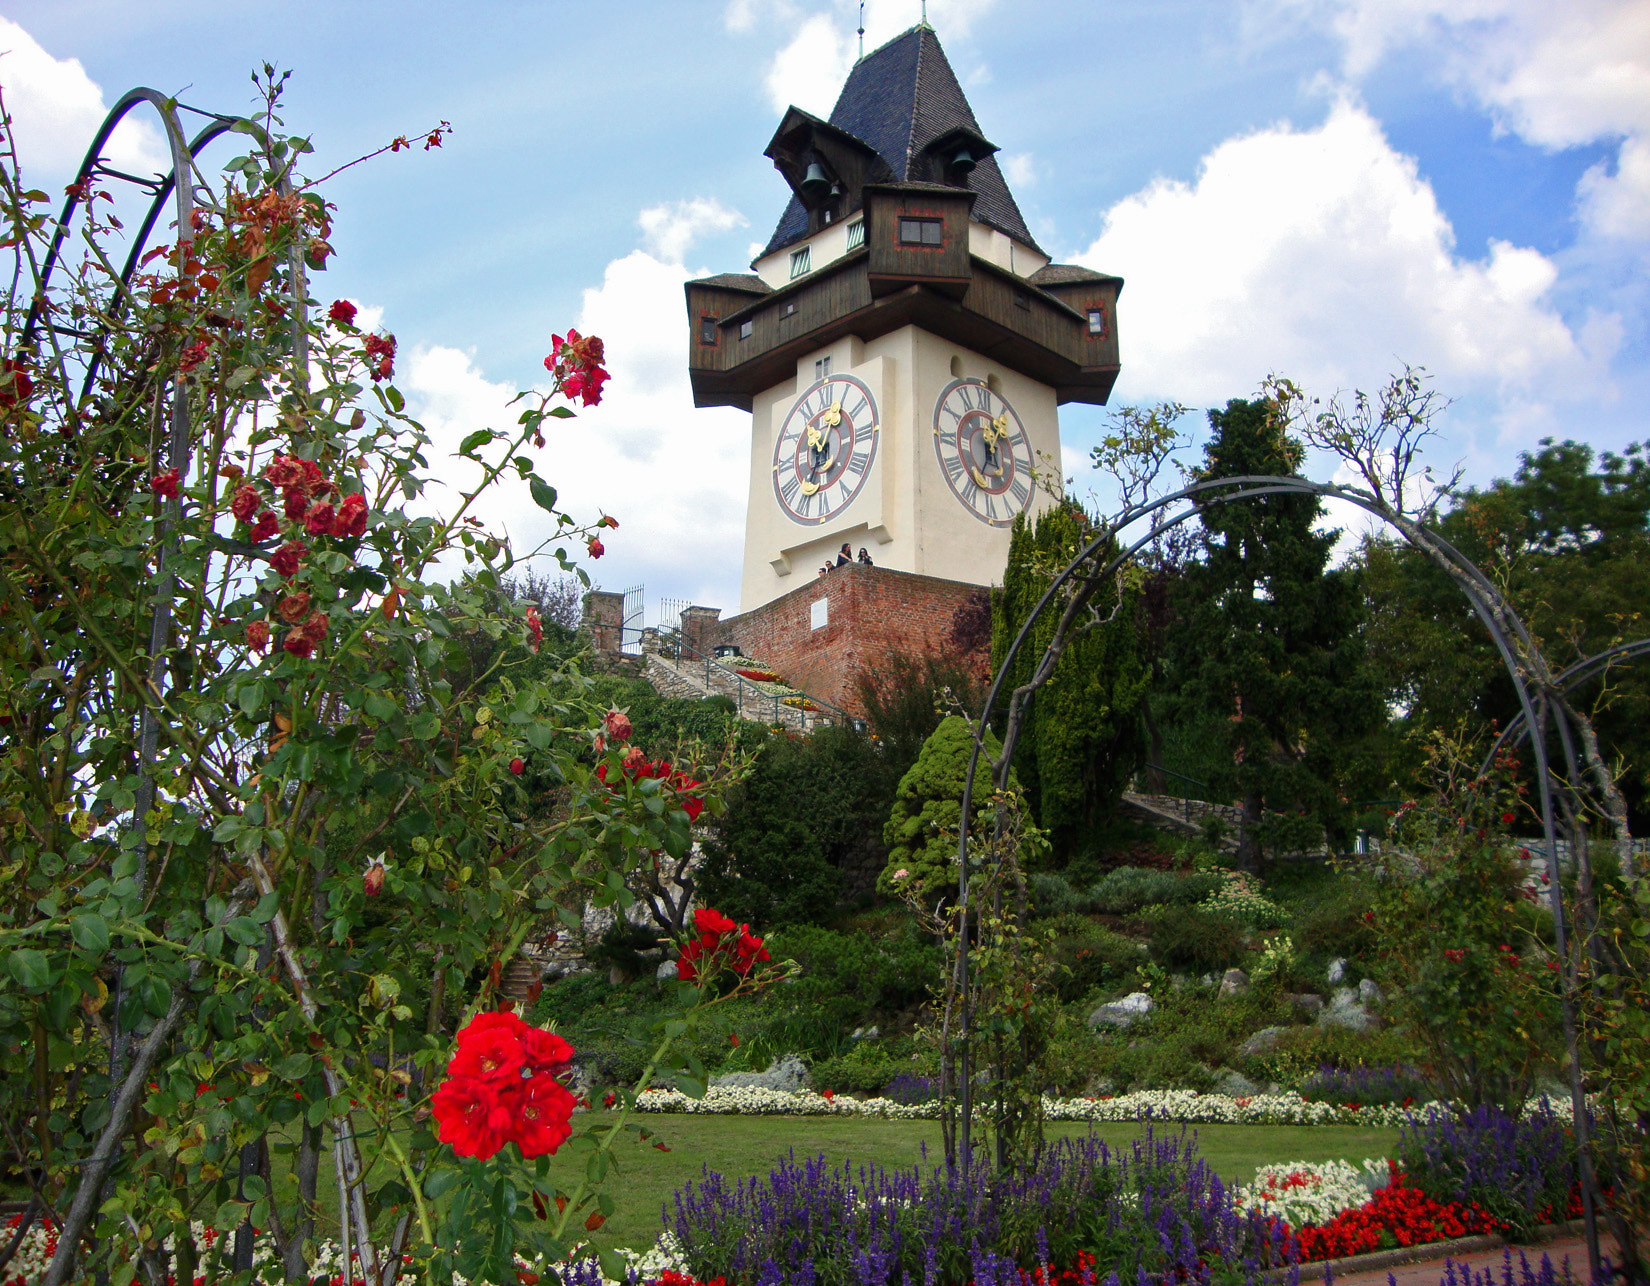 Photograph Clock Tower in Graz/Schlossberg by Marie-Louise Titze on 500px